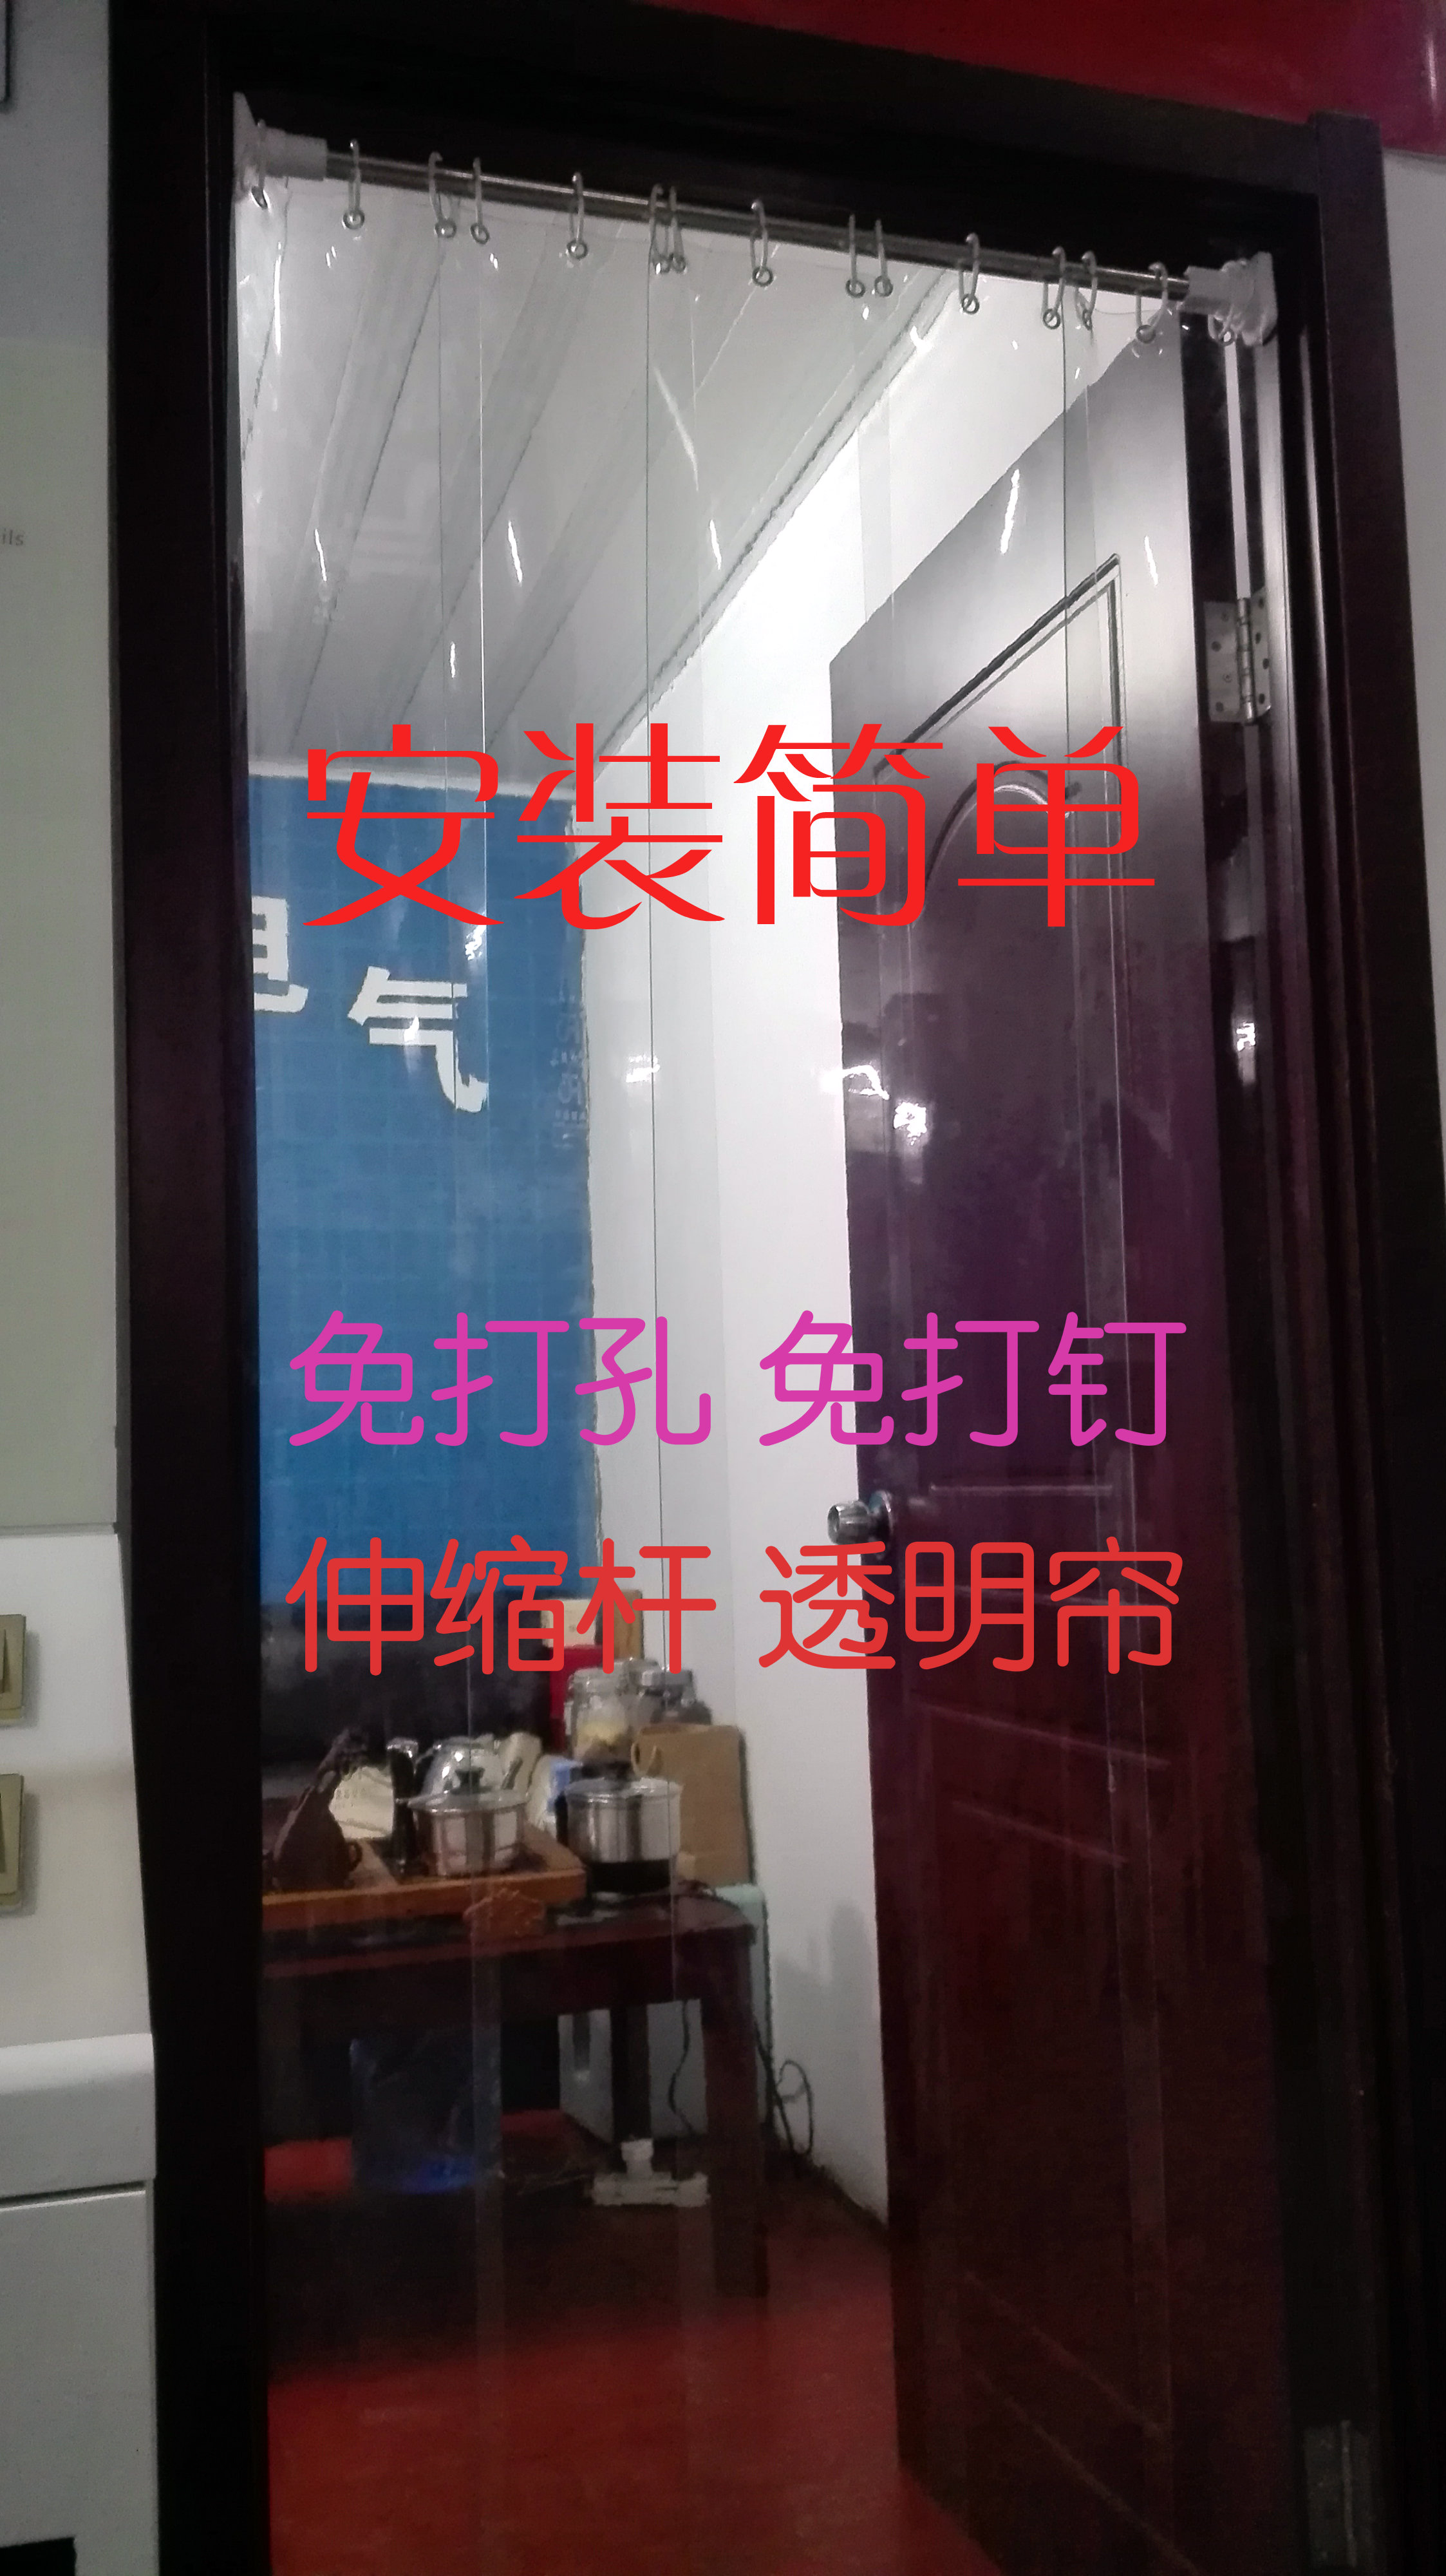 Air conditioner soft door curtain free punching, nail free transparent plastic, household folding windshield, dustproof partition, anti freezing curtain